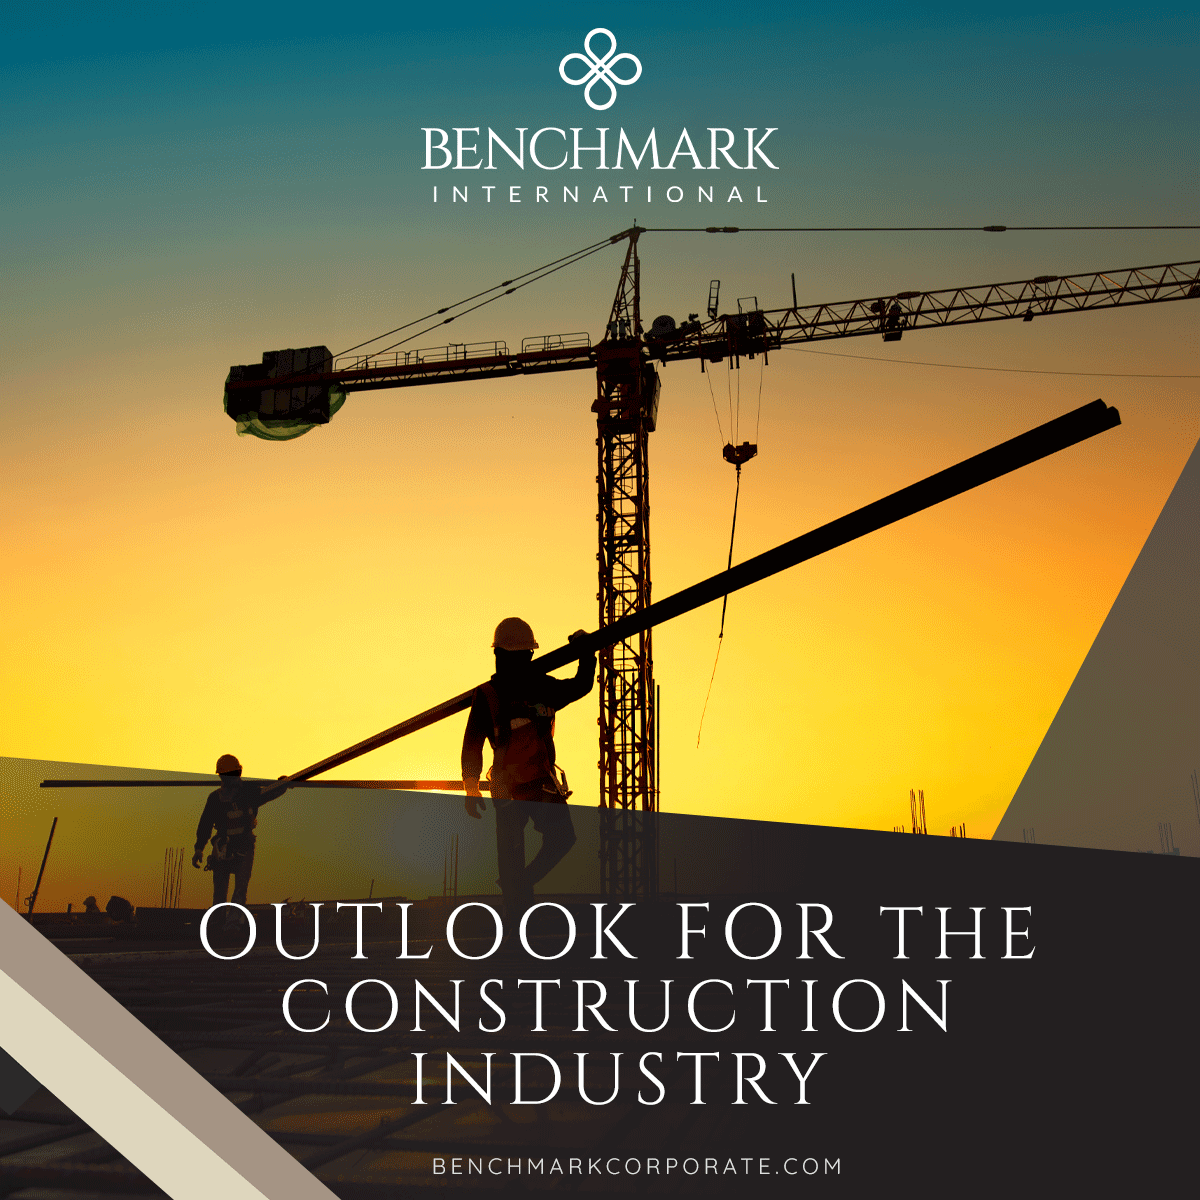 Outlook_for_Contstruction_Industry-Social